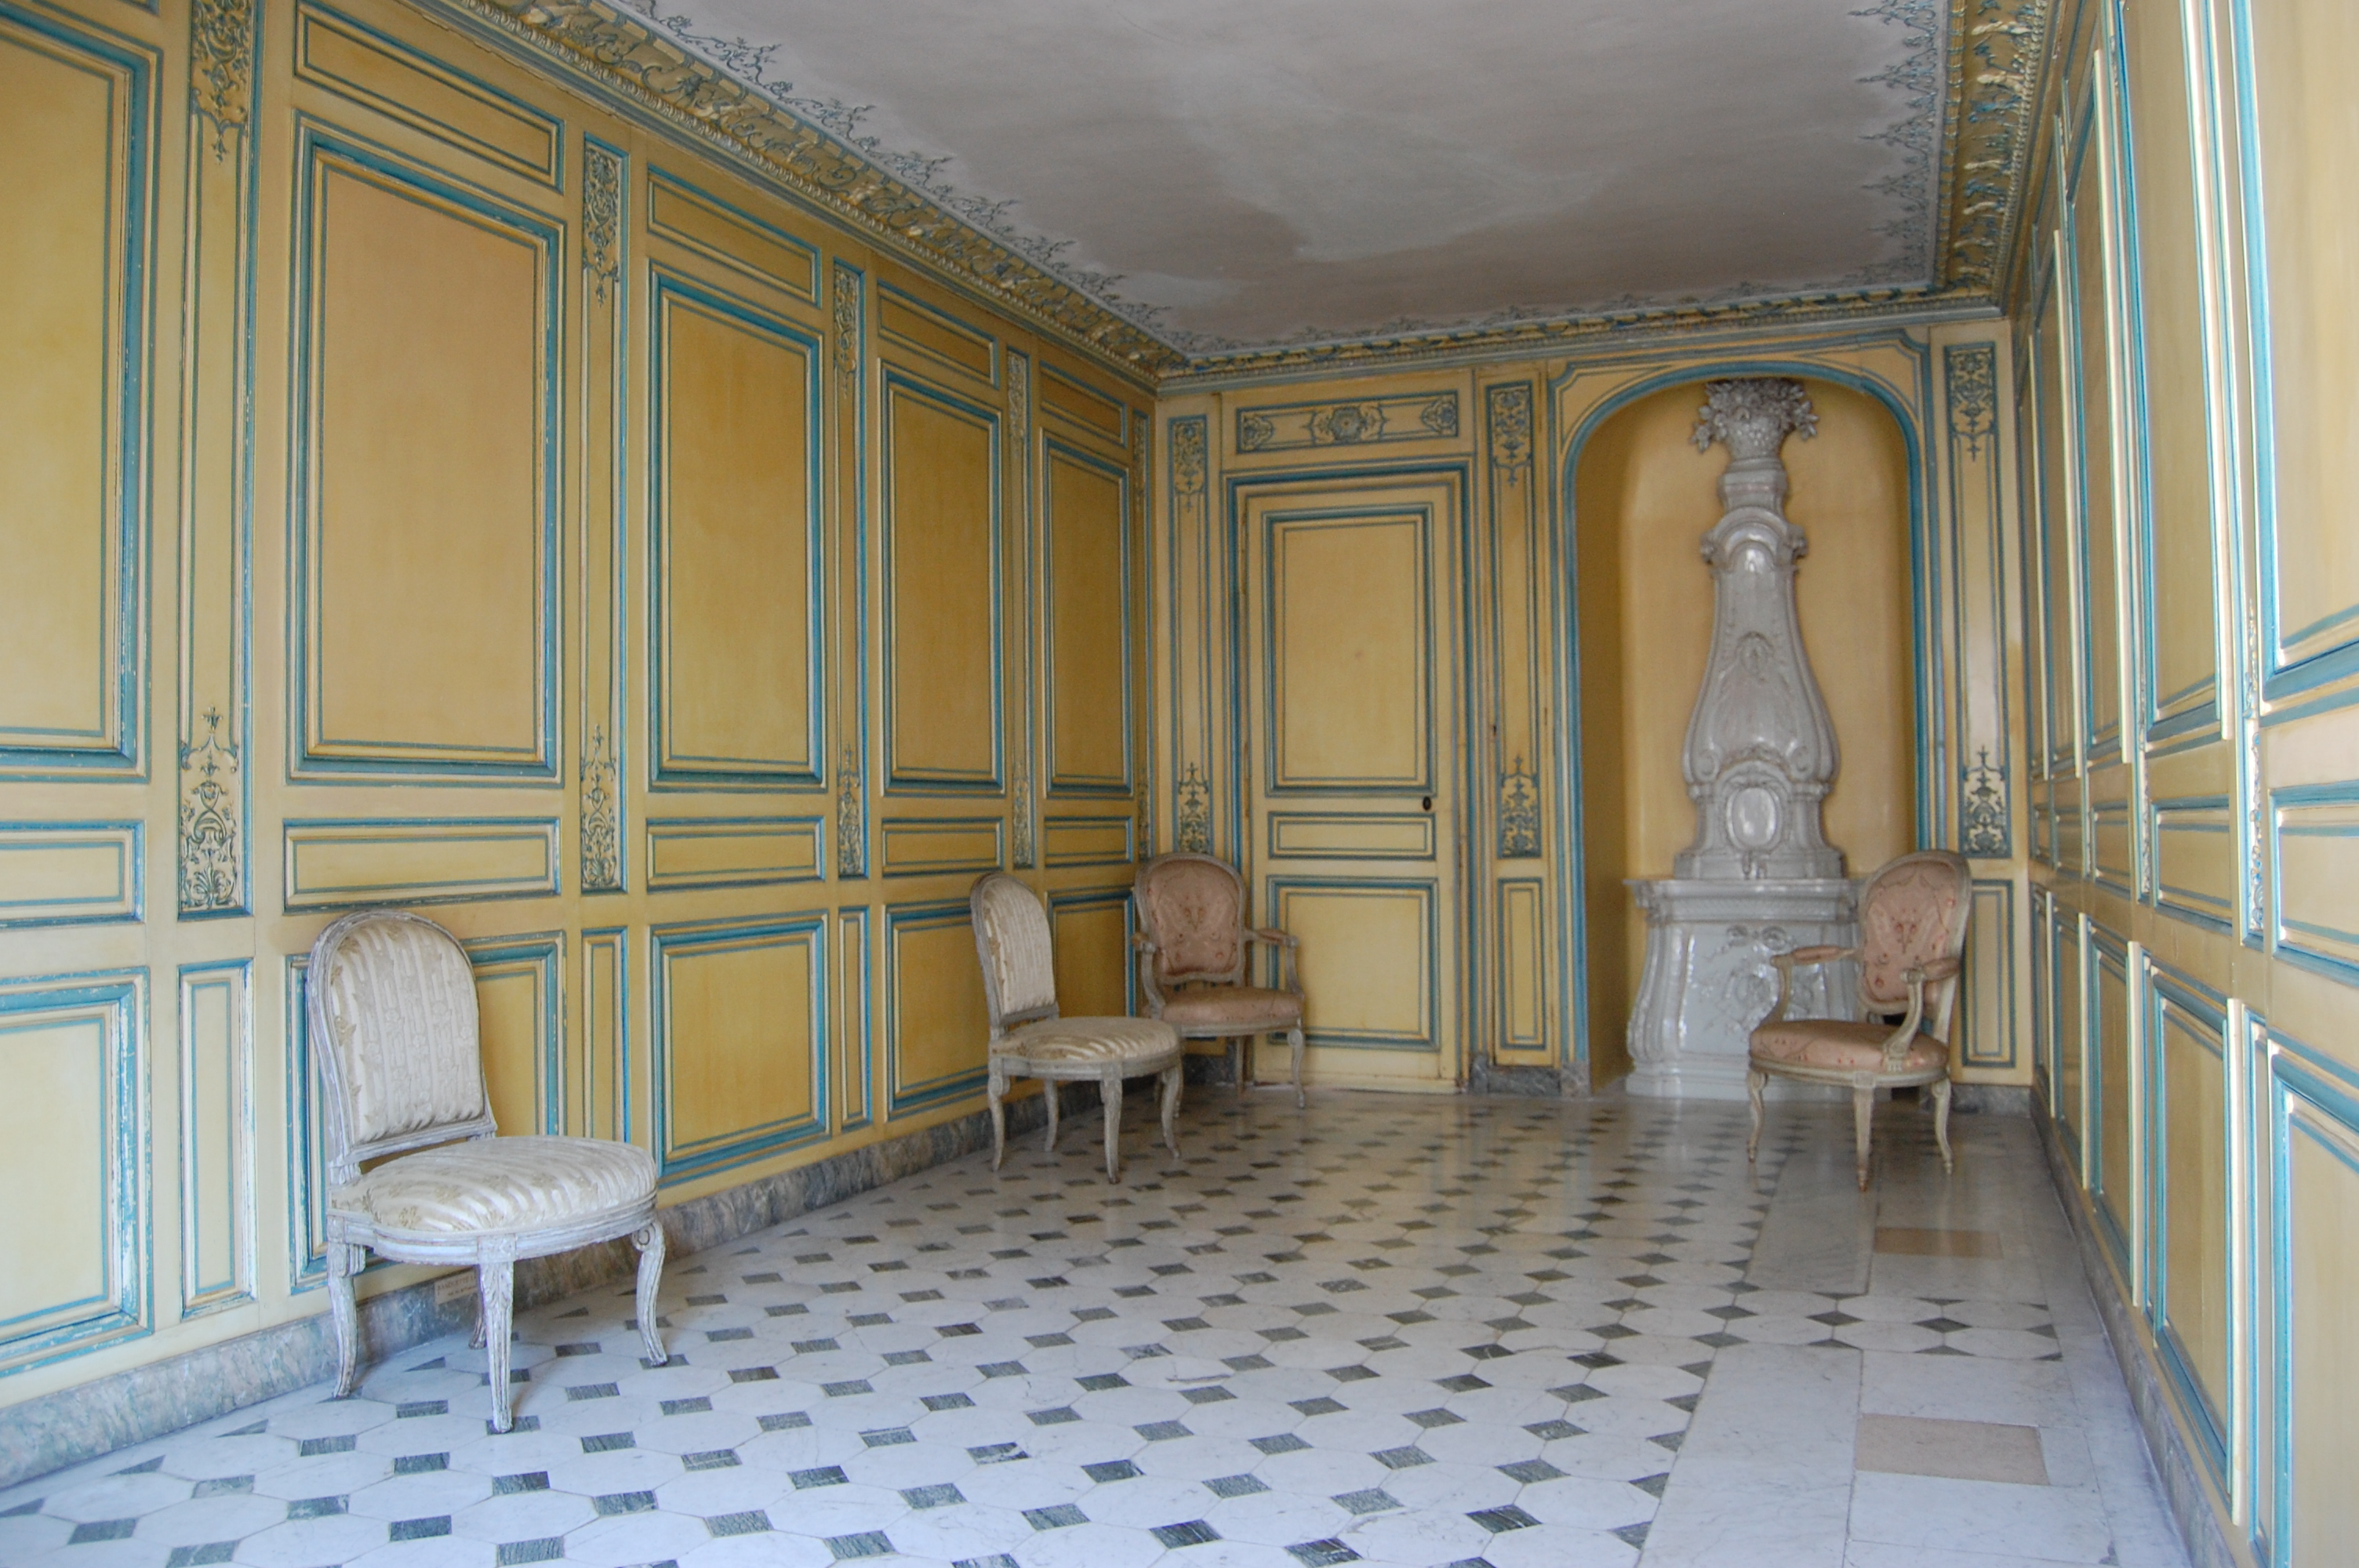 Palace of versailles bathrooms